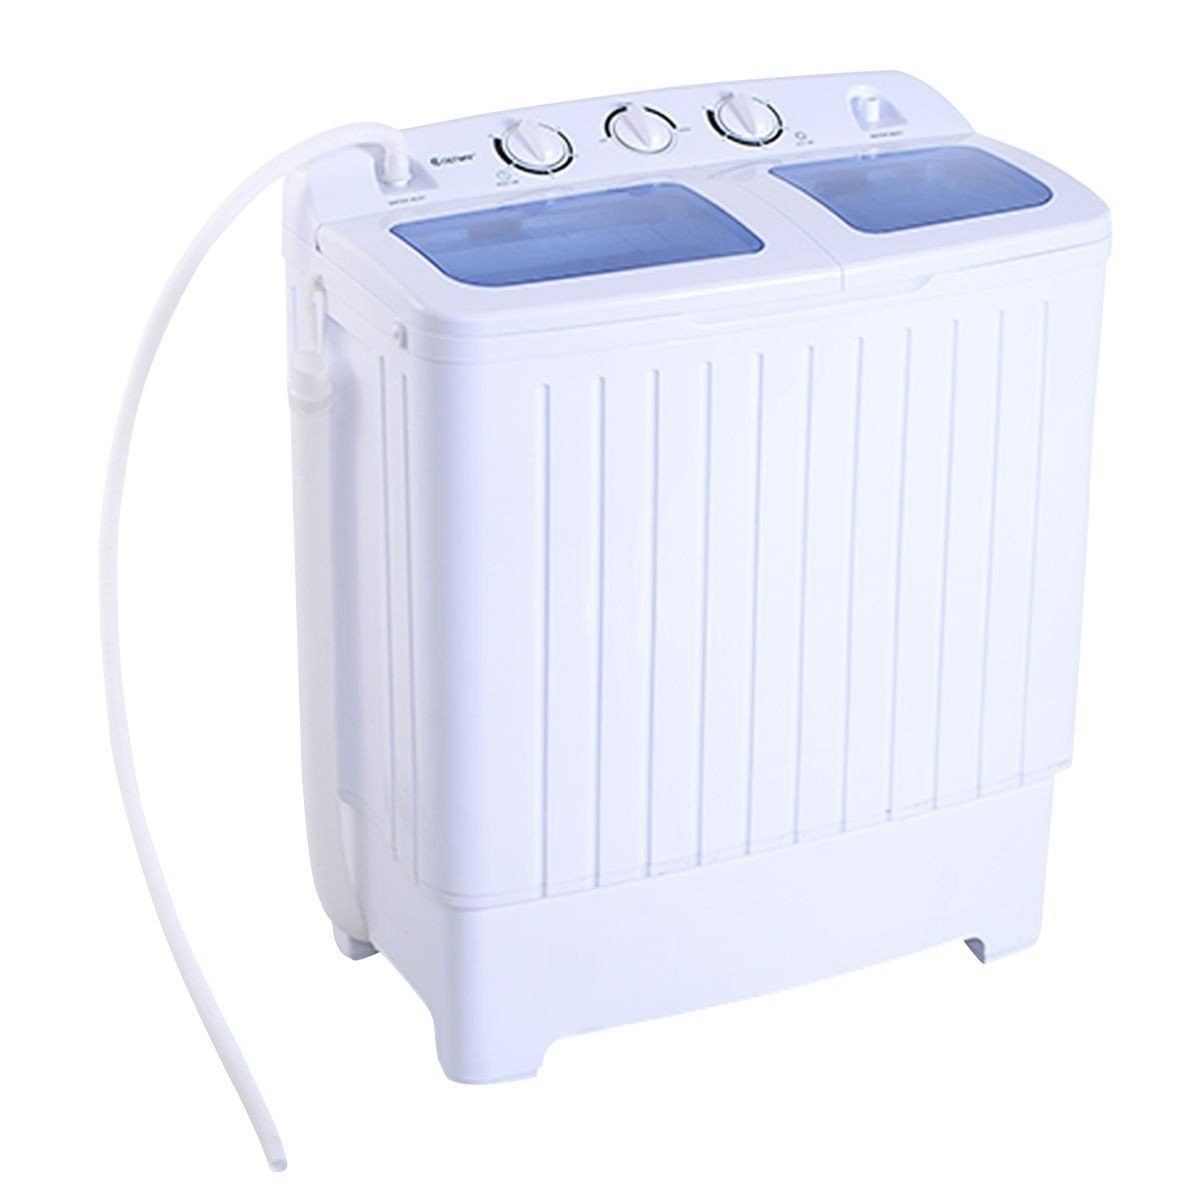 No Washing Machine Means No Problem If You Give This Portable